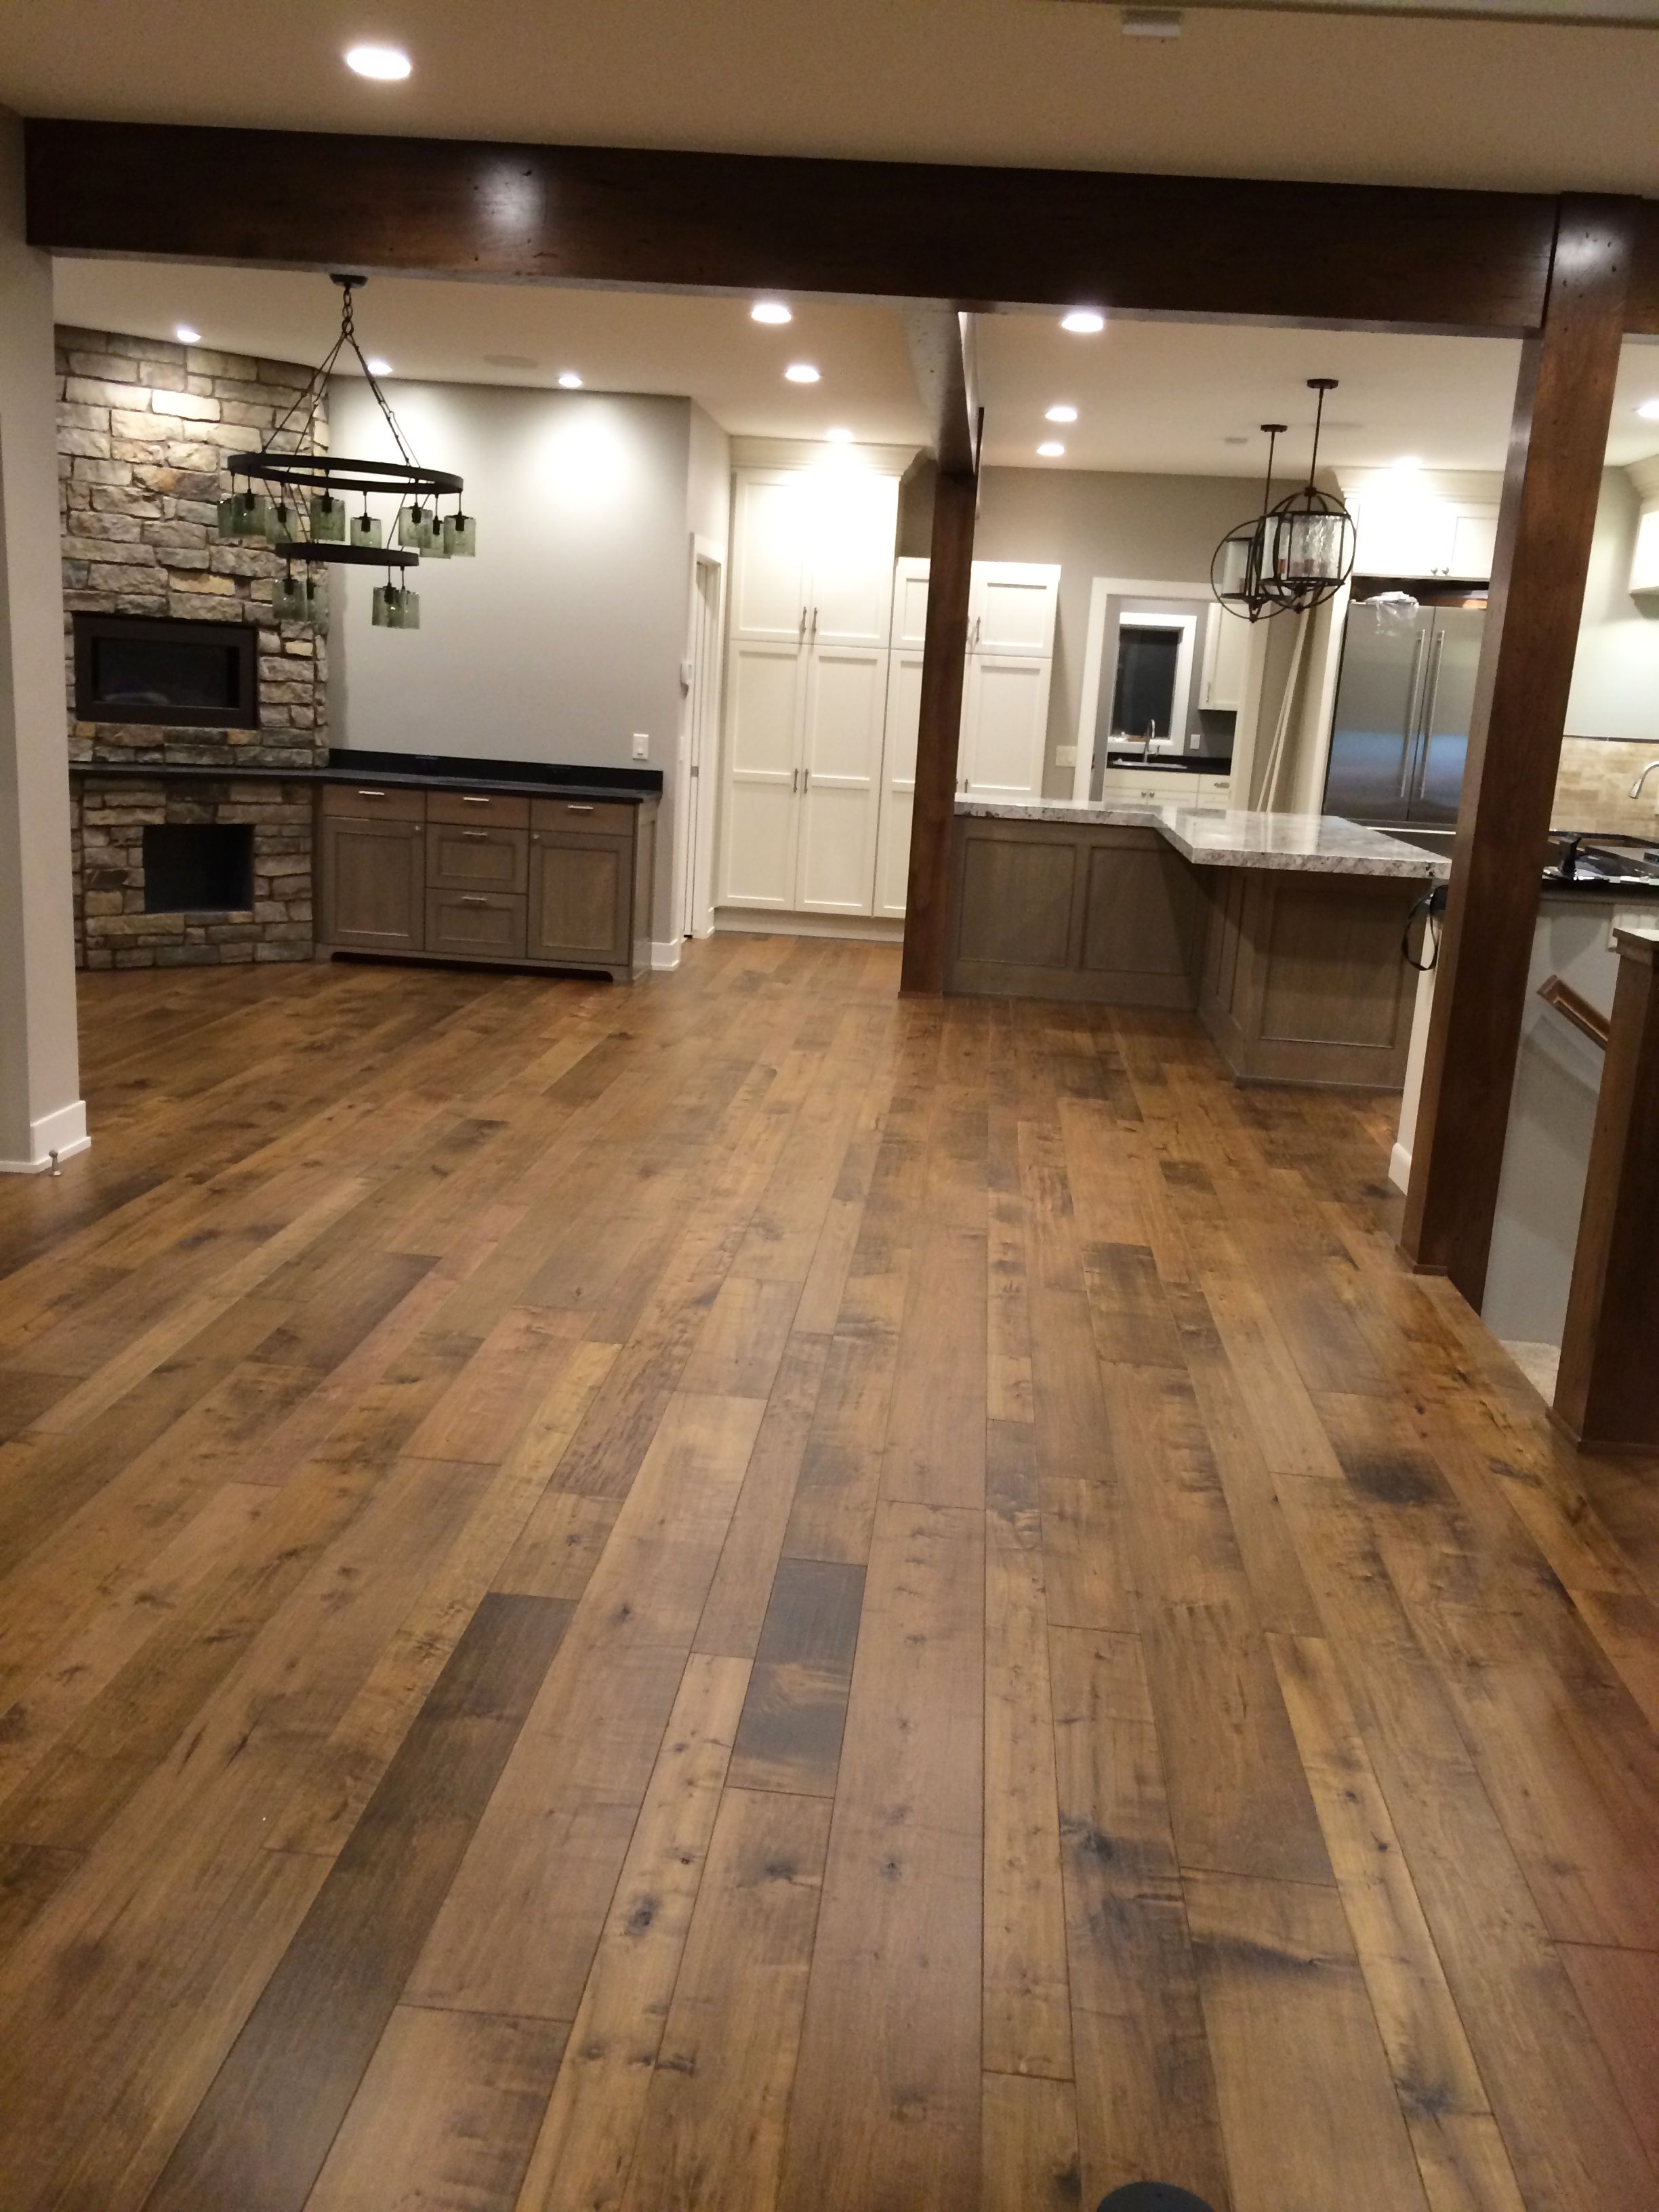 Monterey Hardwood Flooring Hallmark Floors Rustic Hardwood Floors Hardwood Floor Colors Rustic Hardwood